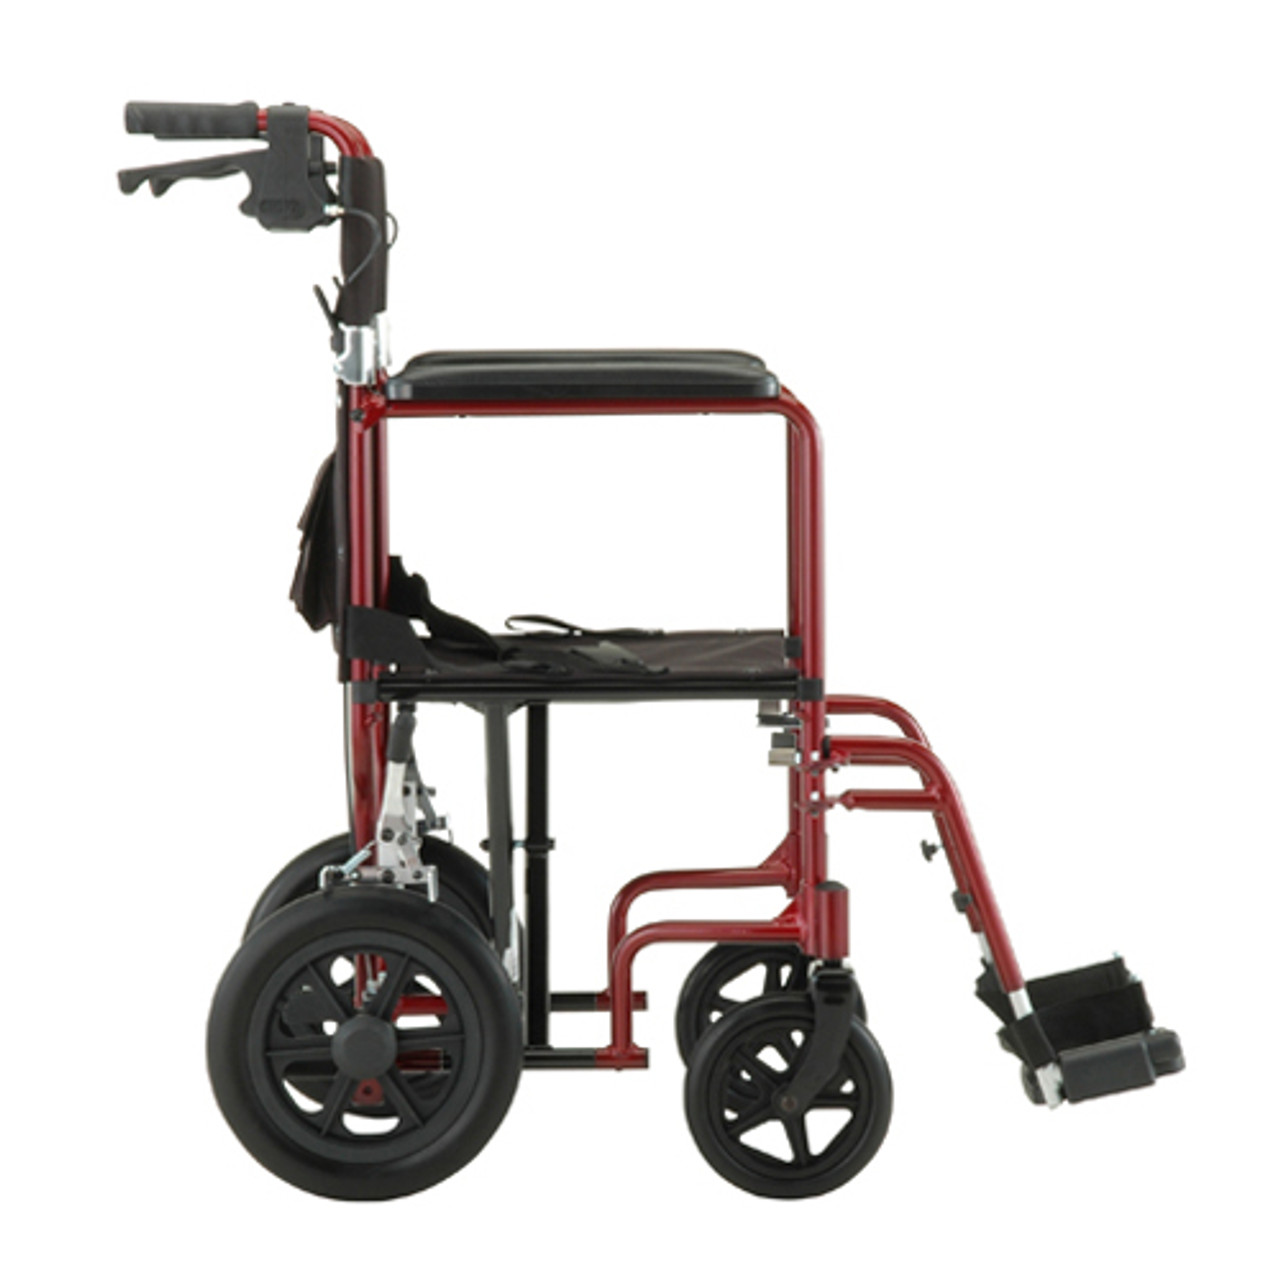 Nova Model 330 Transport Chair with hand brakes - Side profile